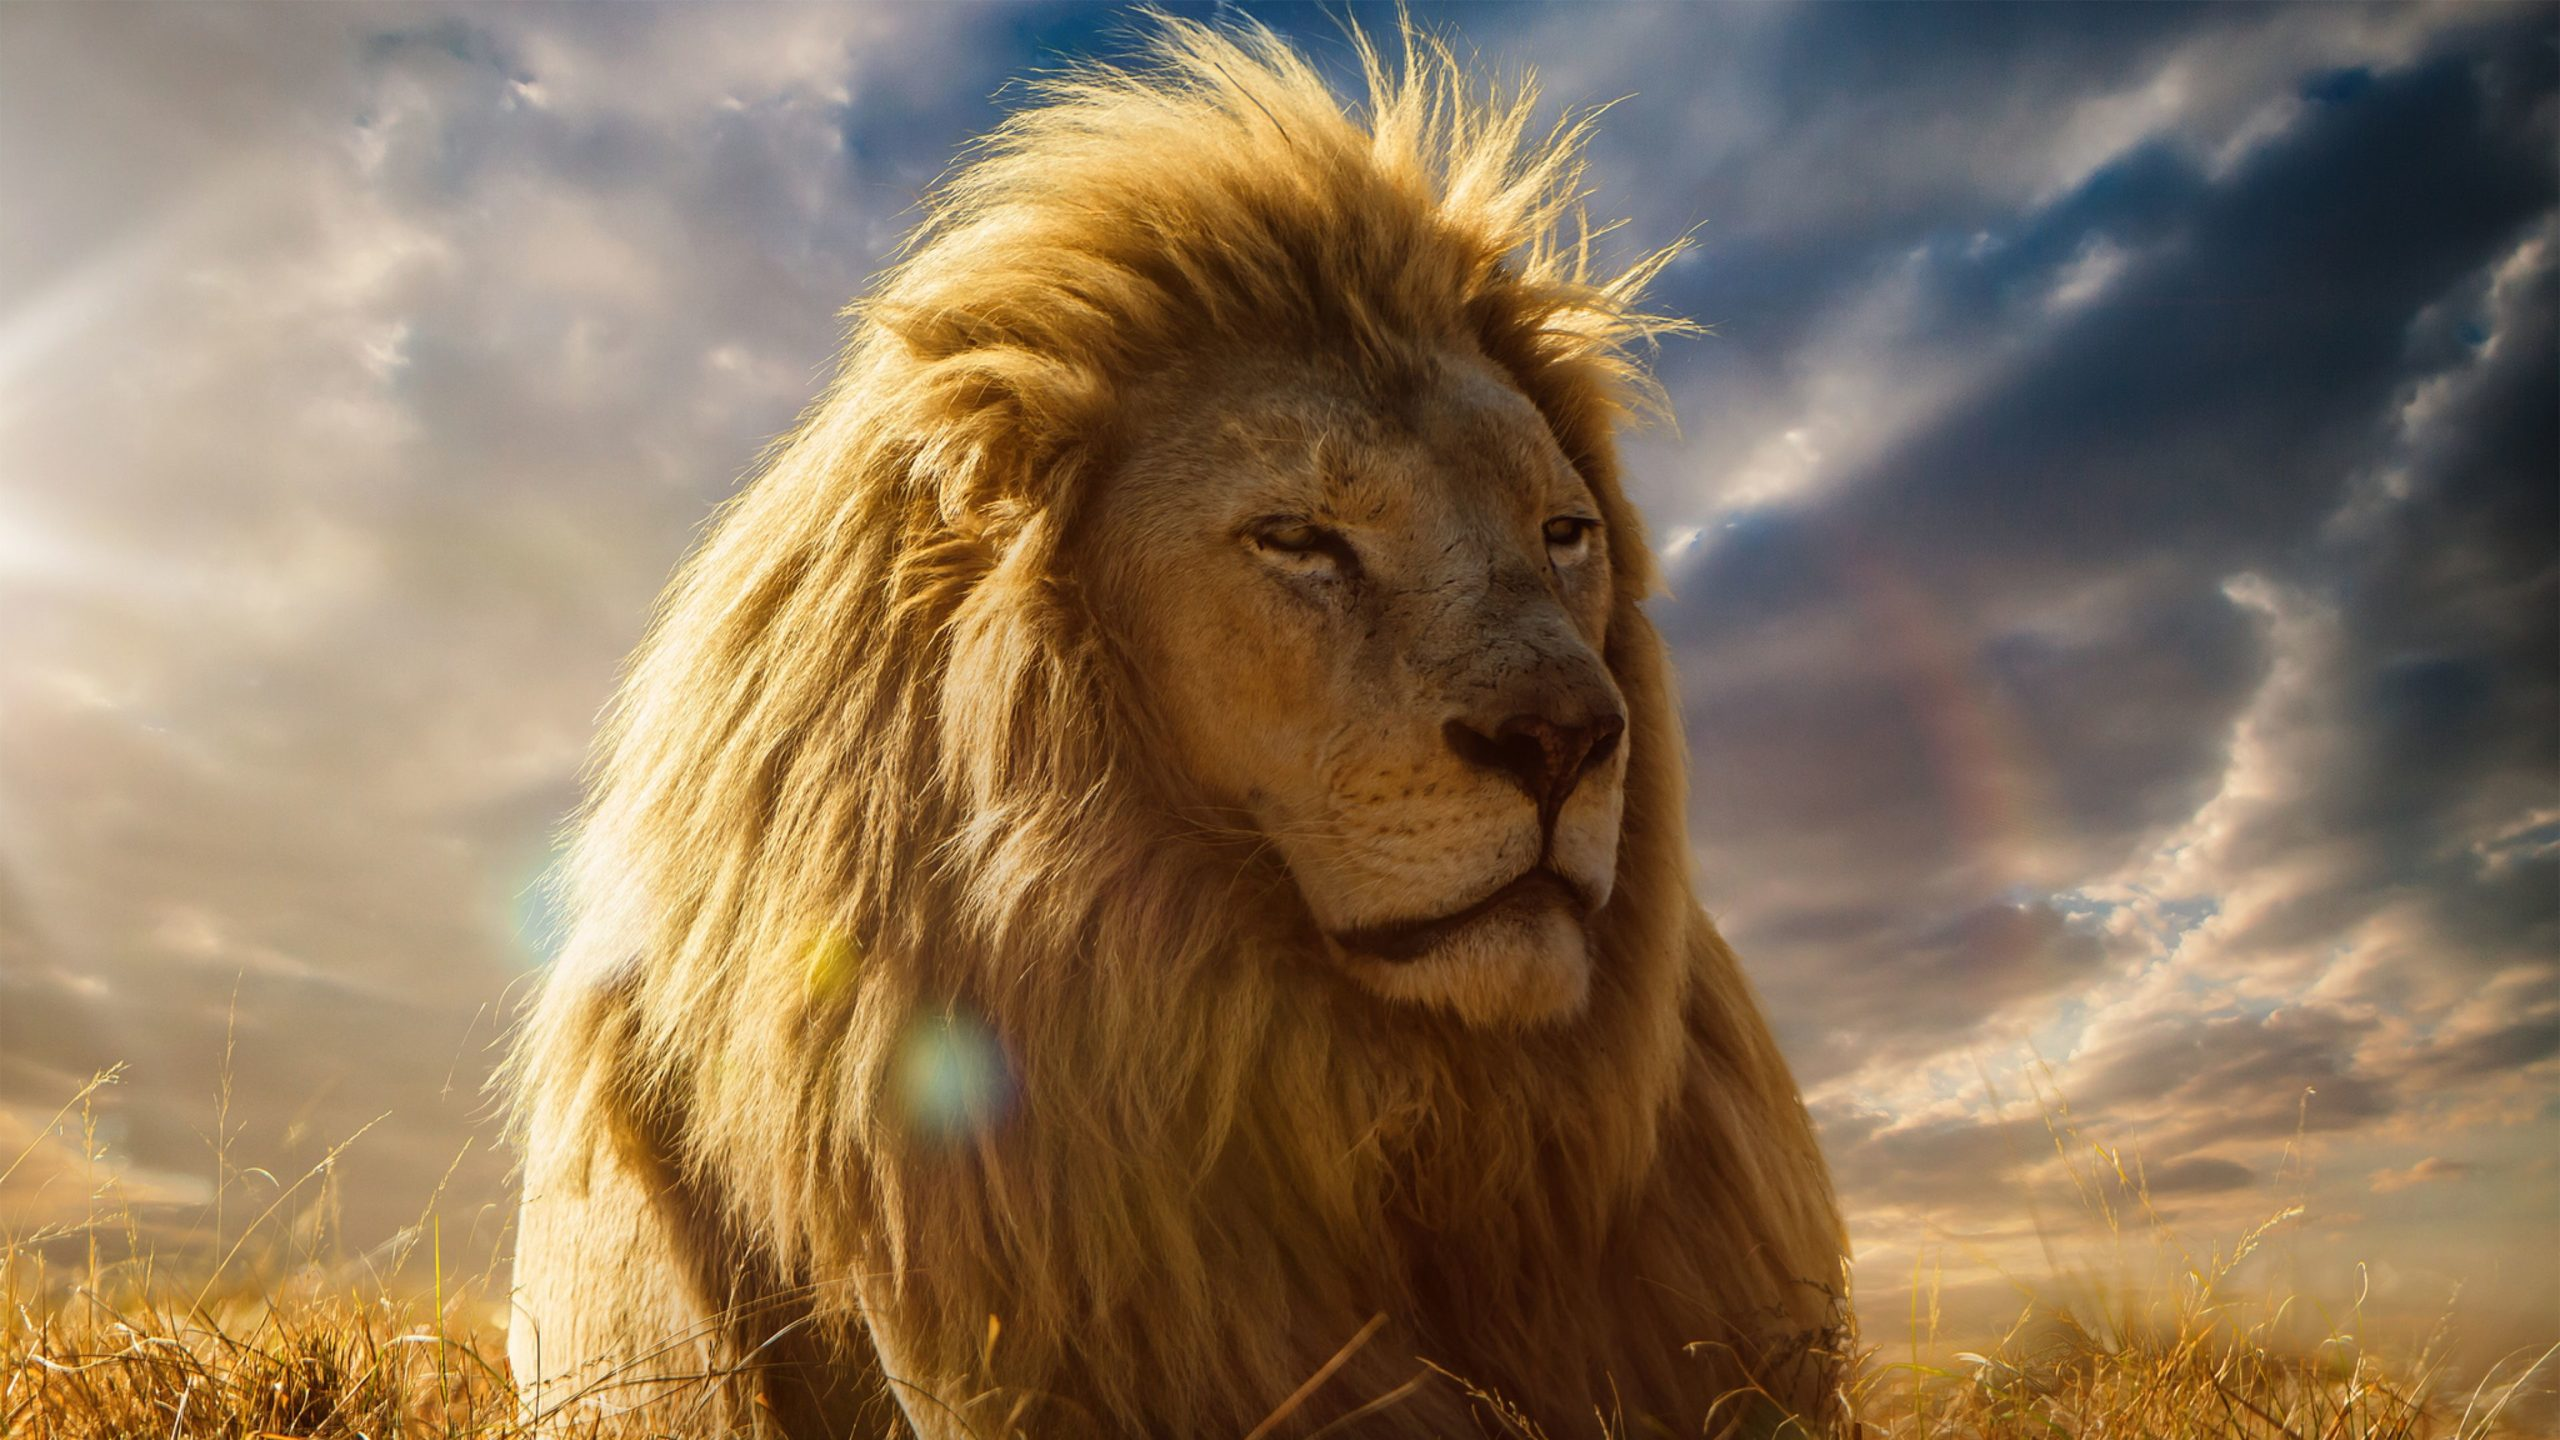 hd lion wallpapers 1080p